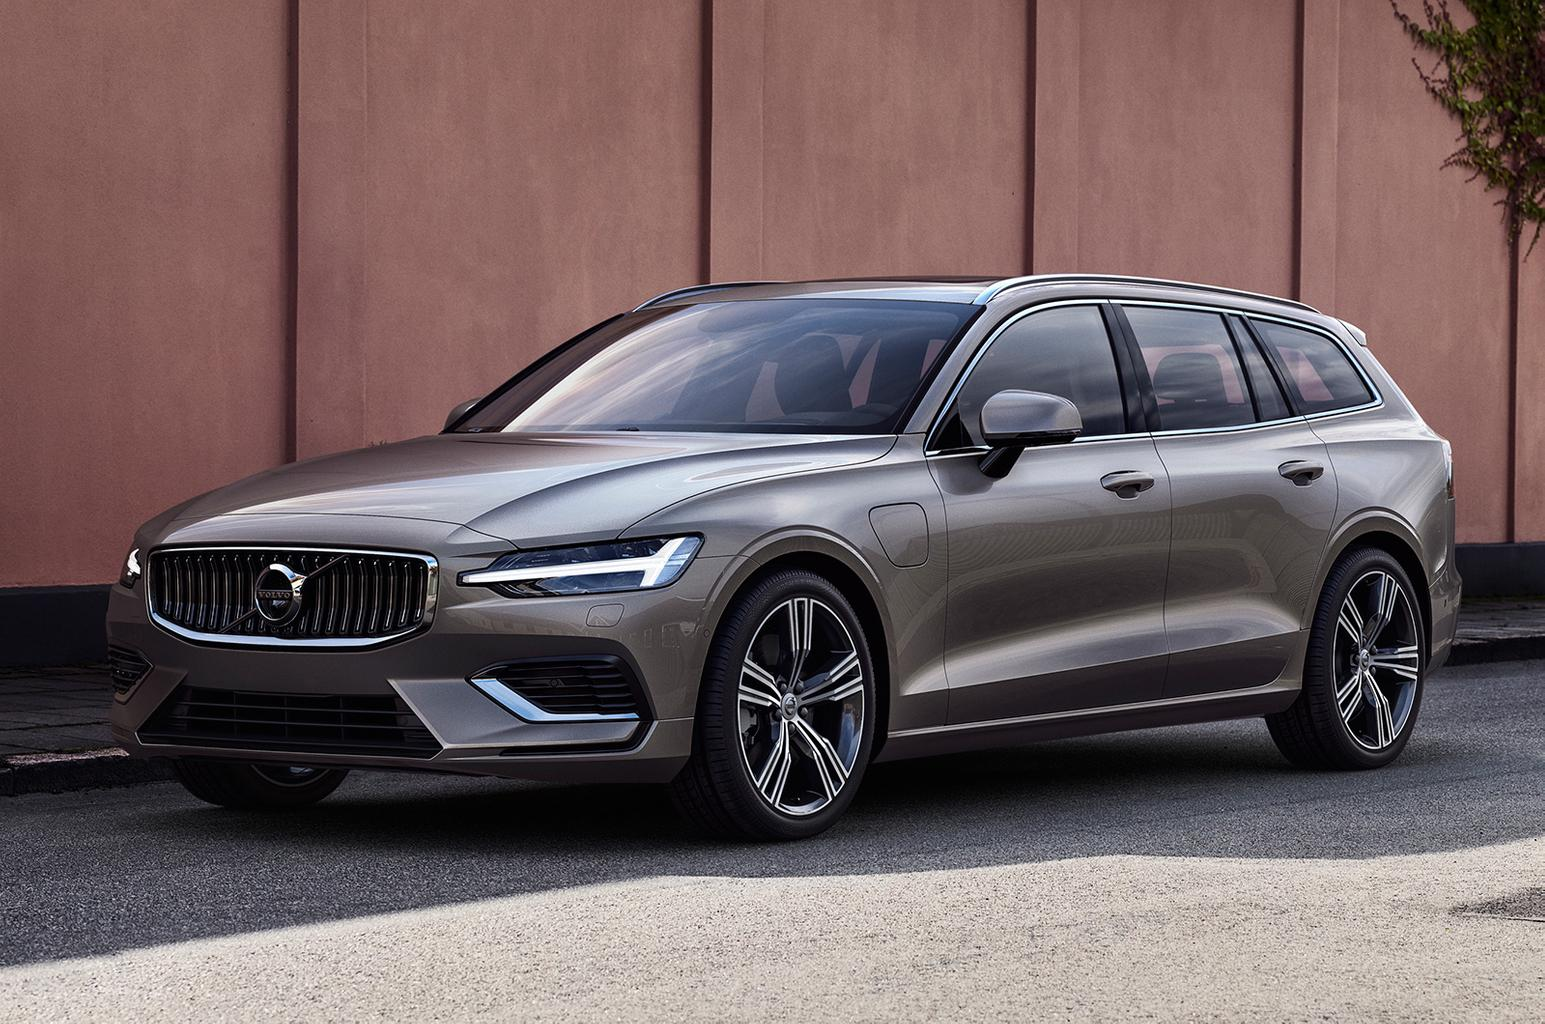 2018 Volvo V60 – price, specs and release date